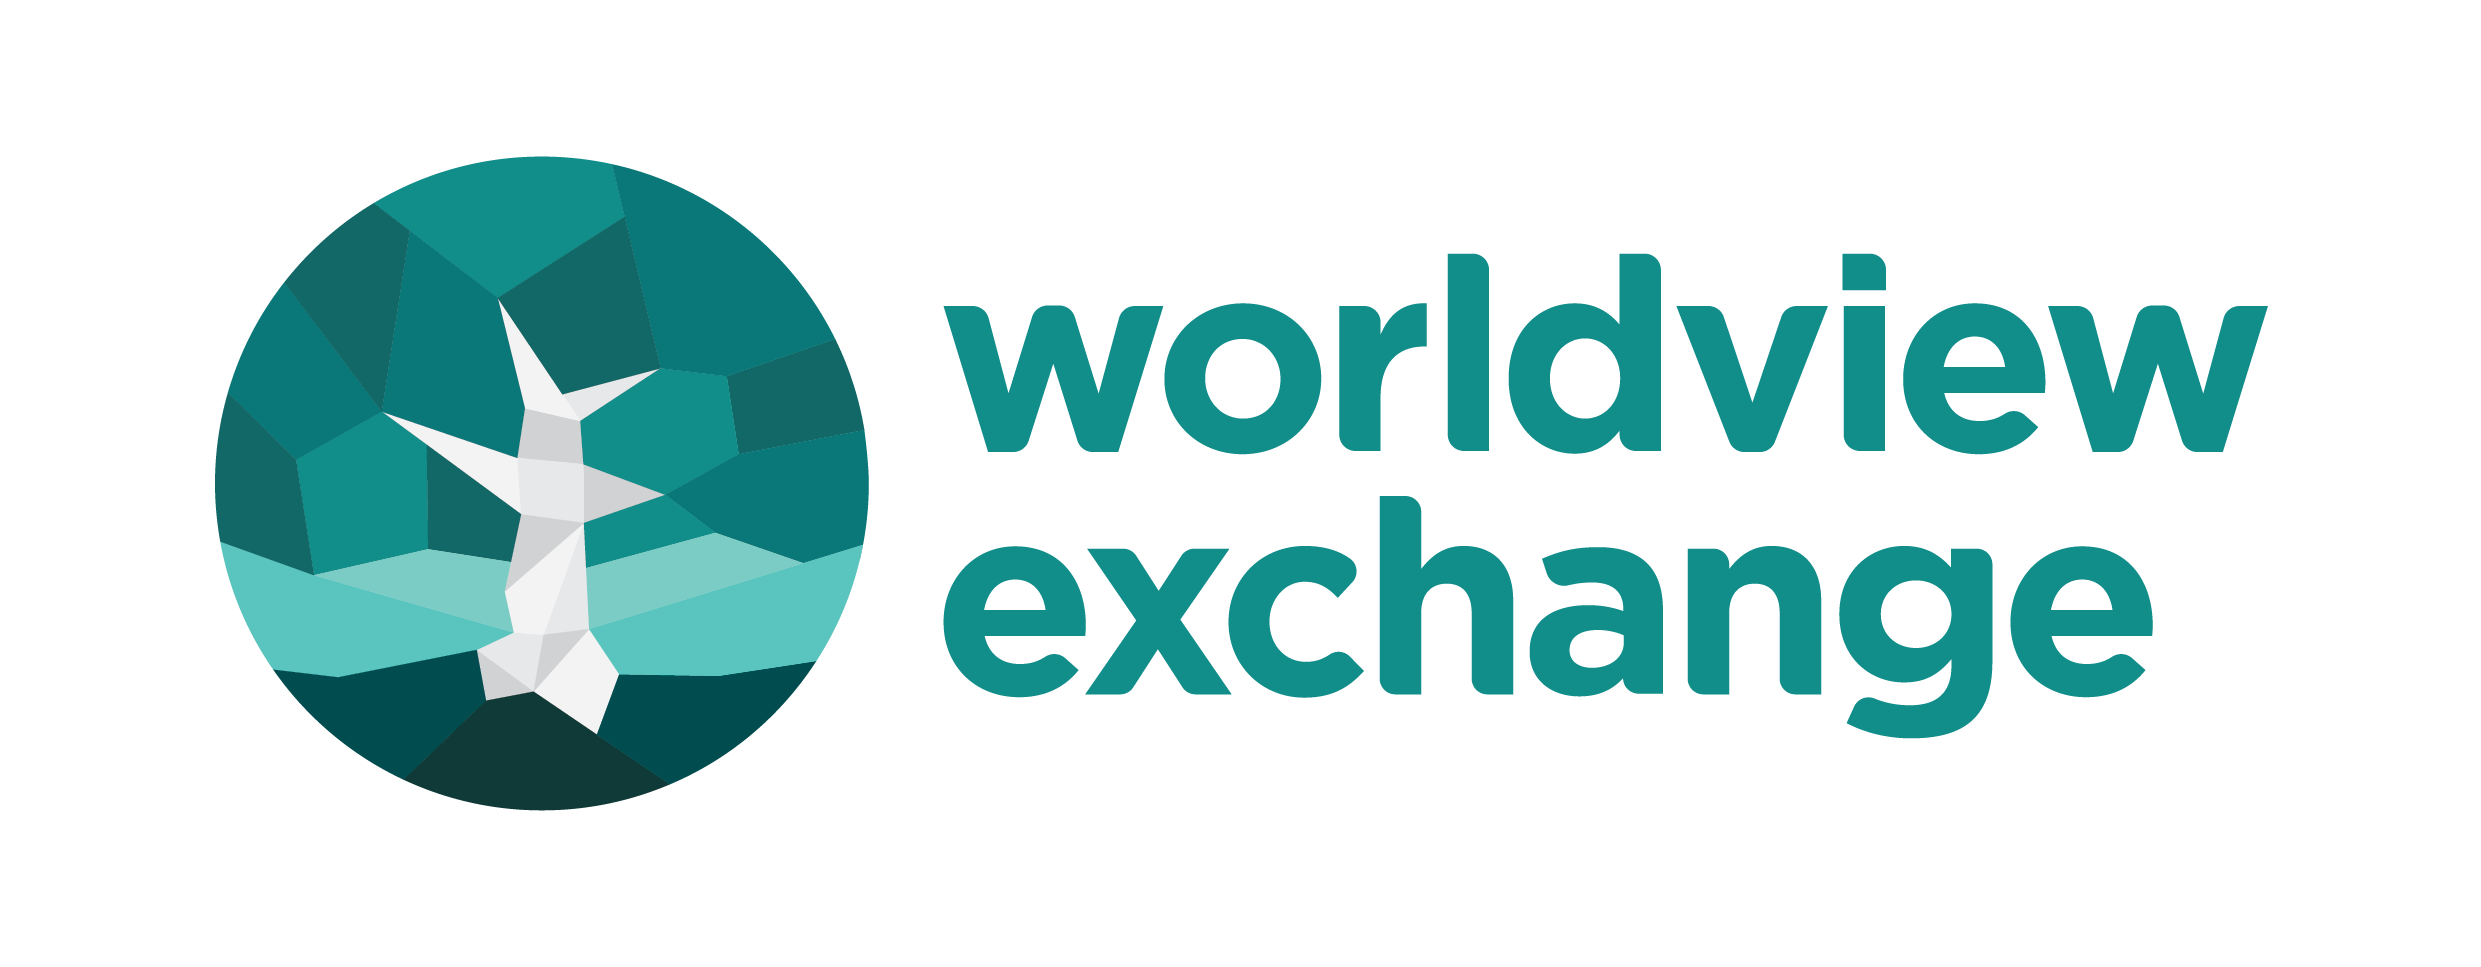 Worldview Exchange